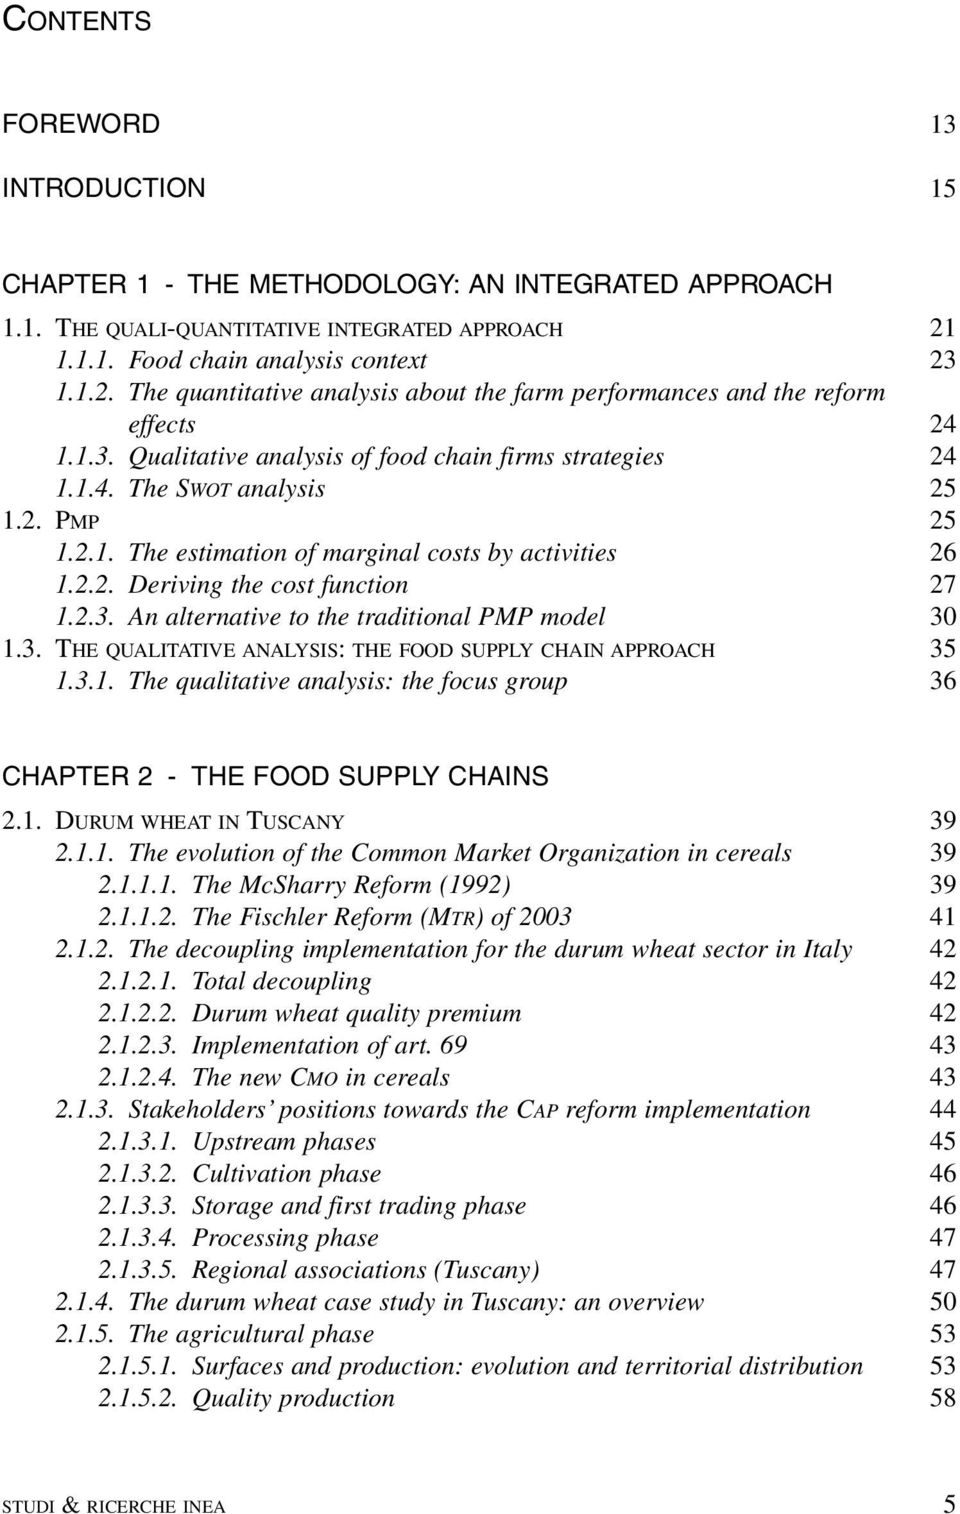 2. PMP 25 1.2.1. The estimation of marginal costs by activities 26 1.2.2. Deriving the cost function 27 1.2.3. An alternative to the traditional PMP model 30 1.3. THE QUALITATIVE ANALYSIS: THE FOOD SUPPLY CHAIN APPROACH 35 1.